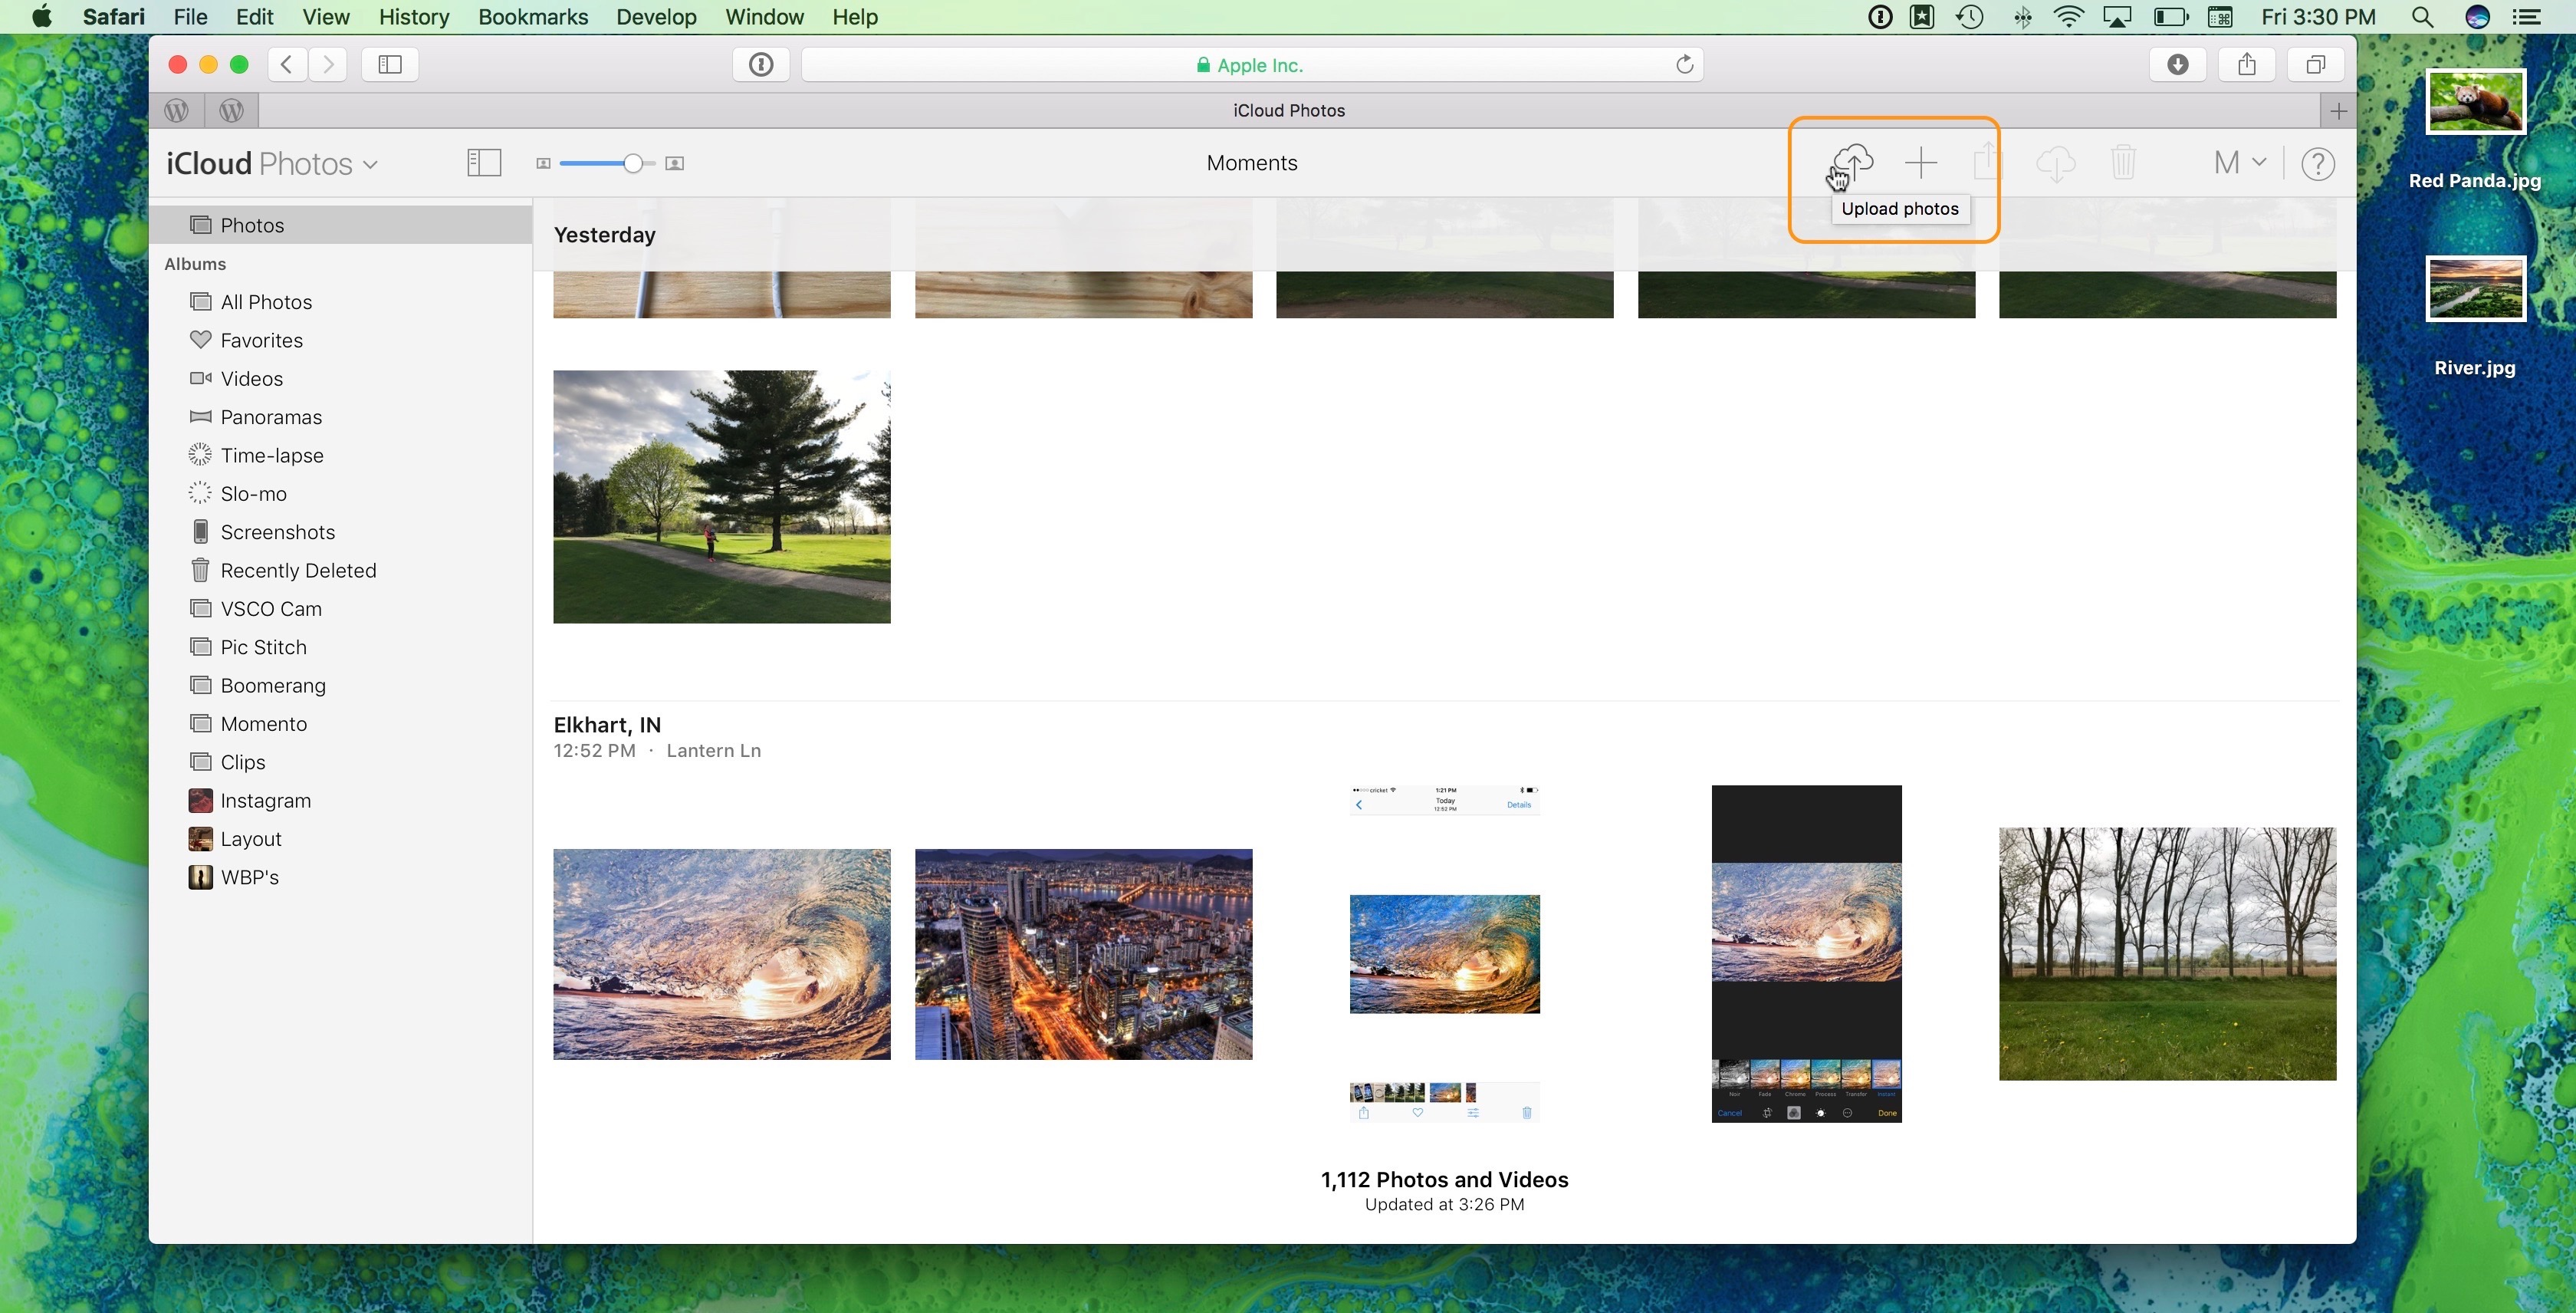 Image showing upload button in Photos on iCloud.com